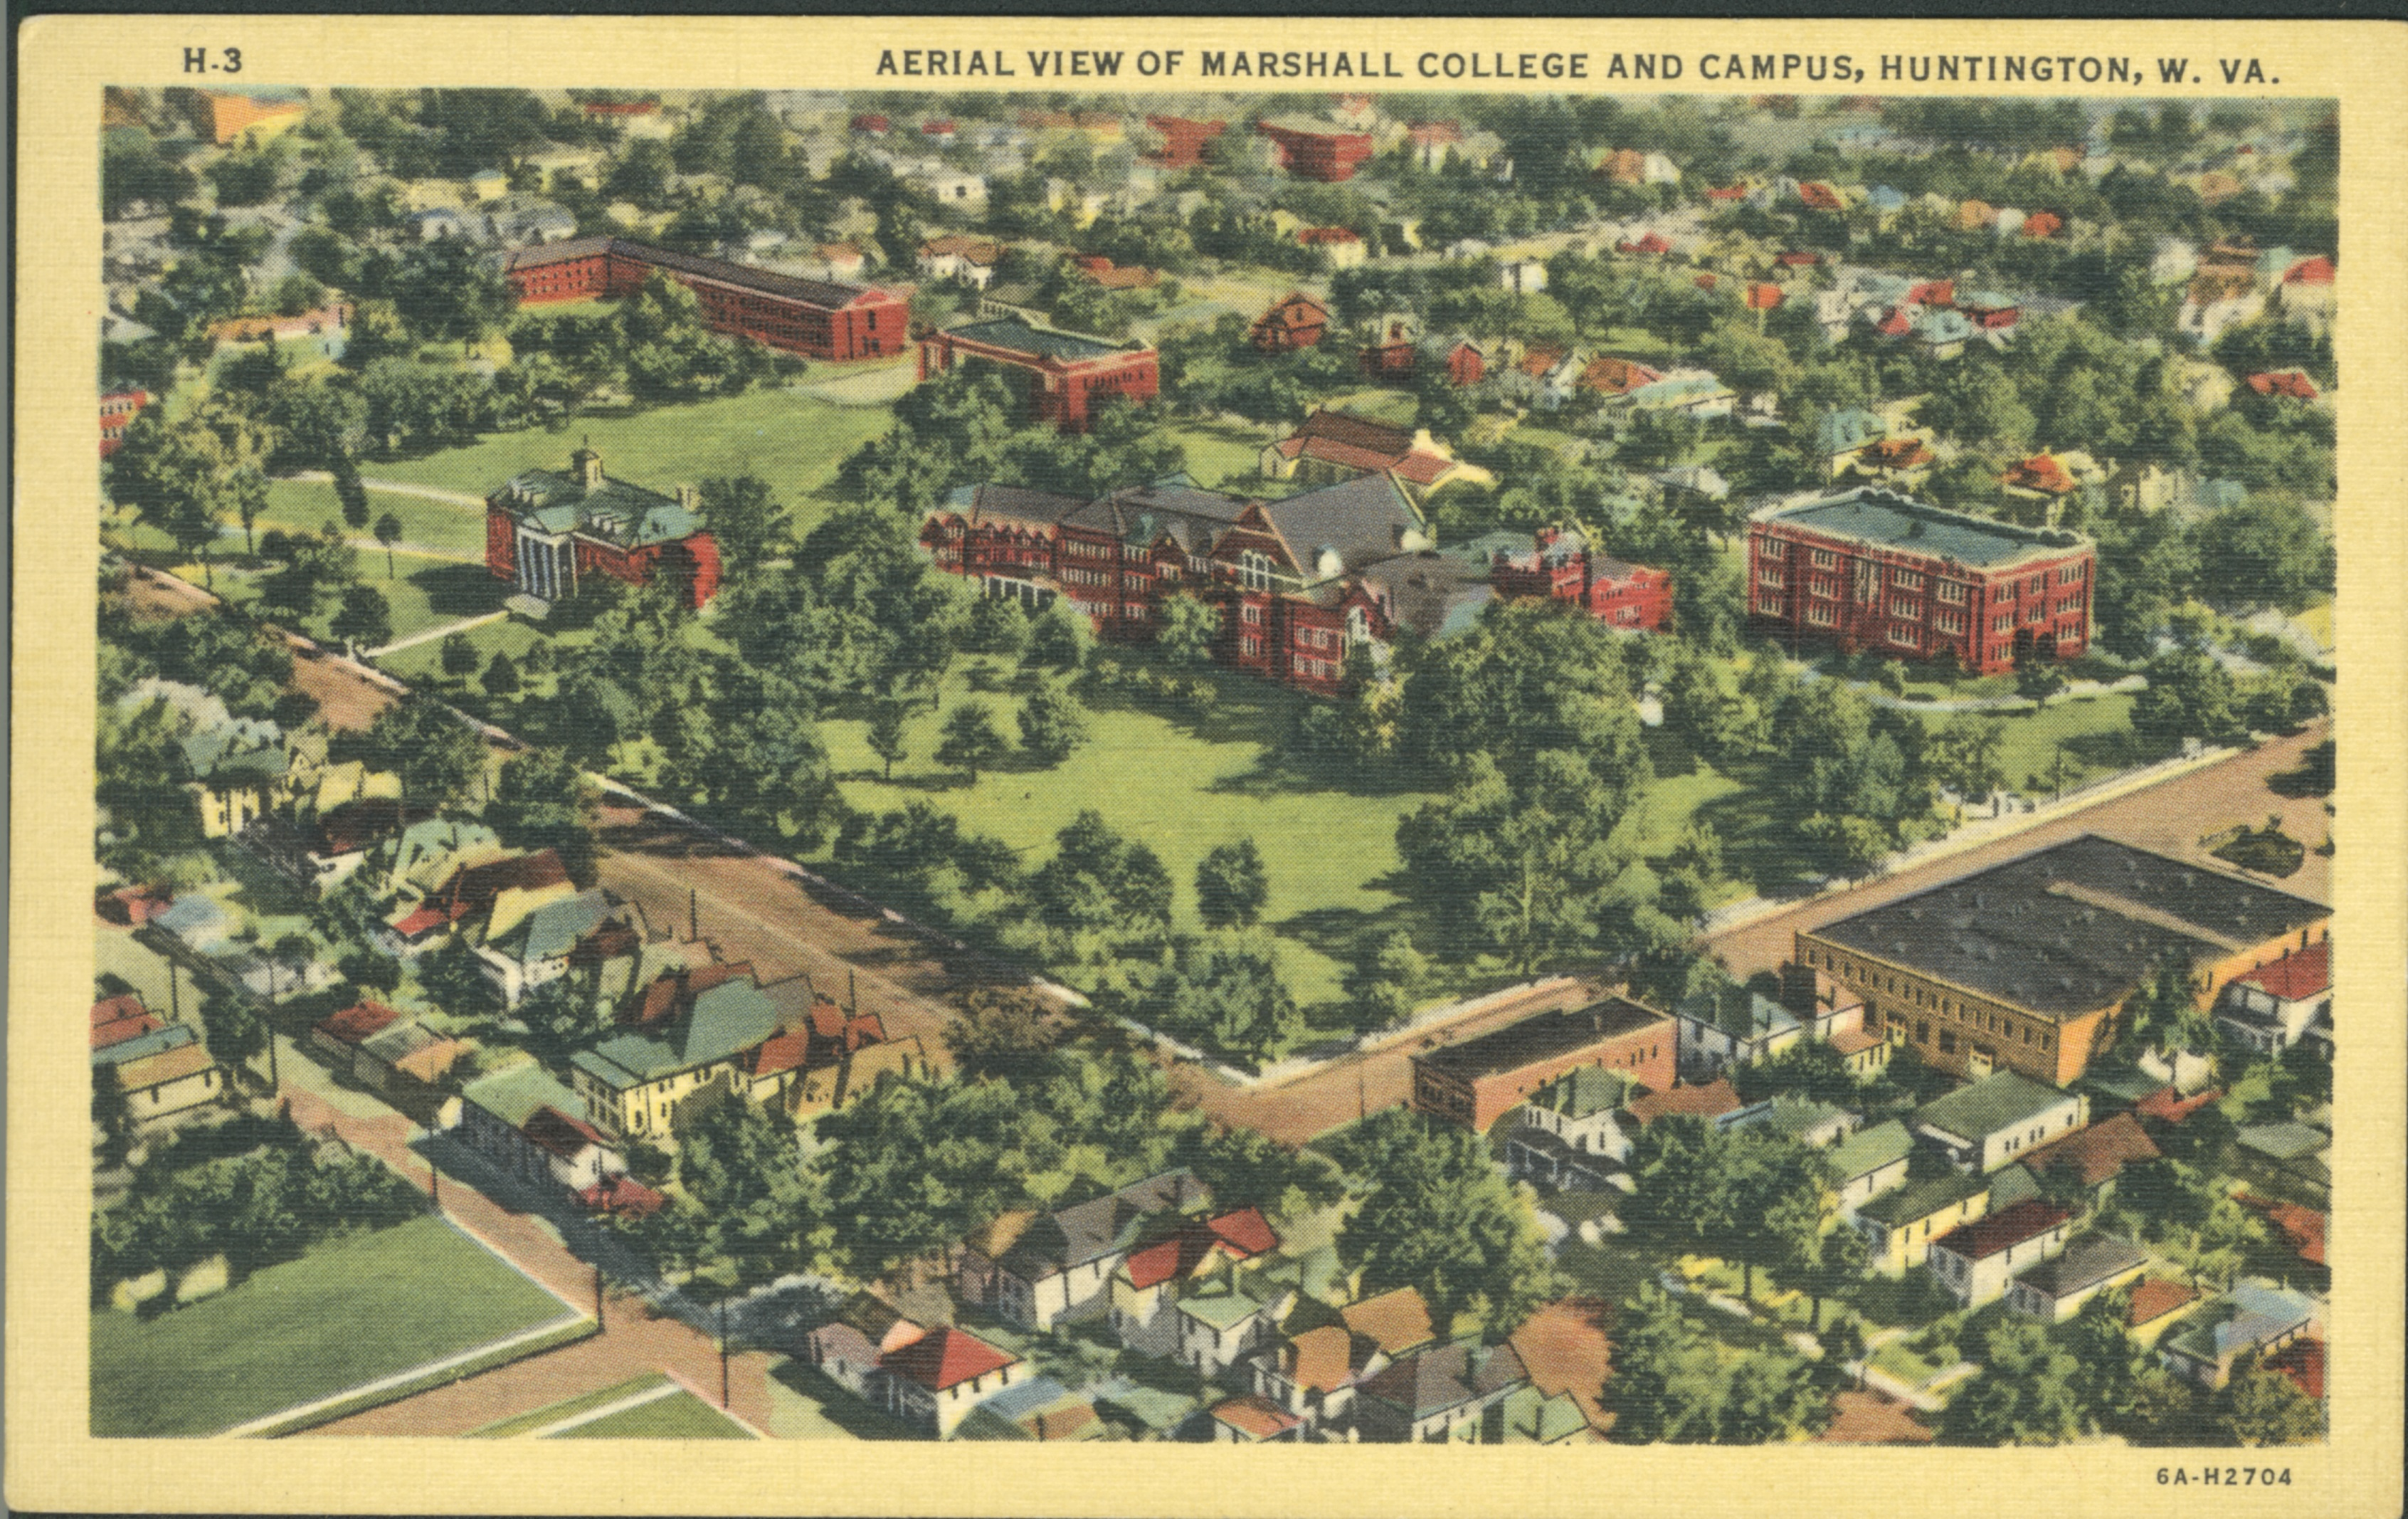 Aerial photo of Marshall College and campus